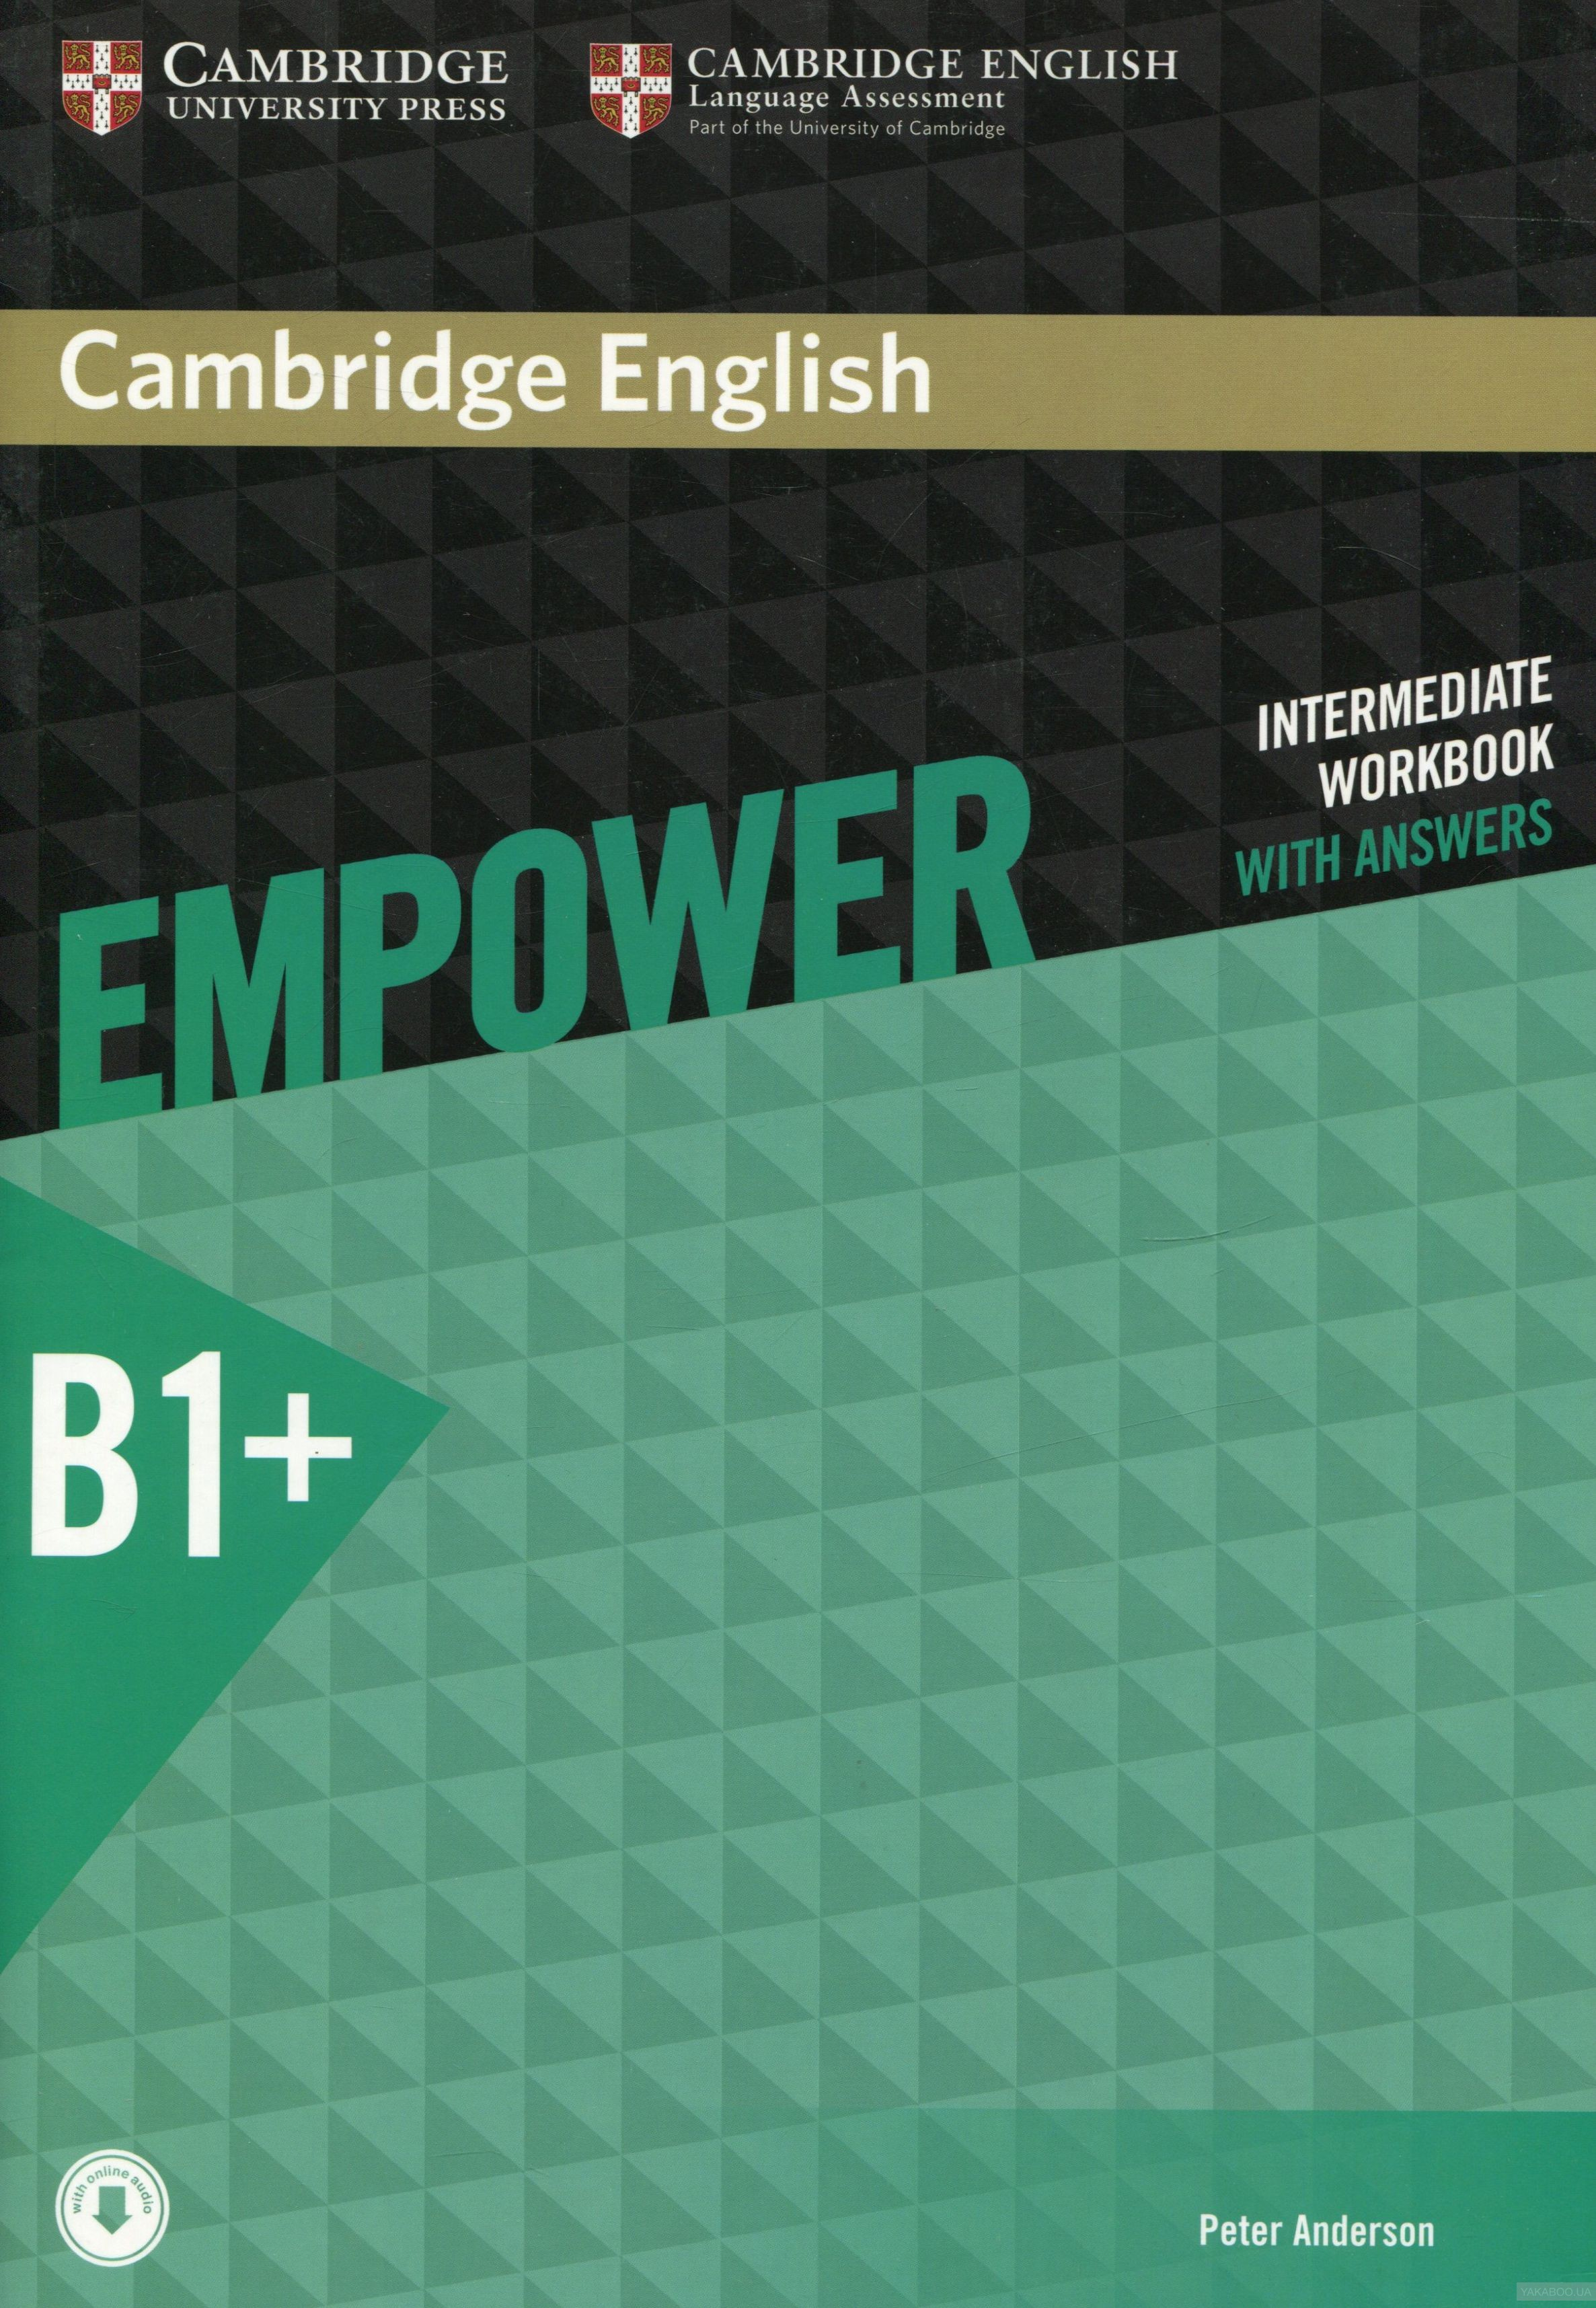 Cambridge English Empower B1+. Intermediate Worlbook ( + answers)